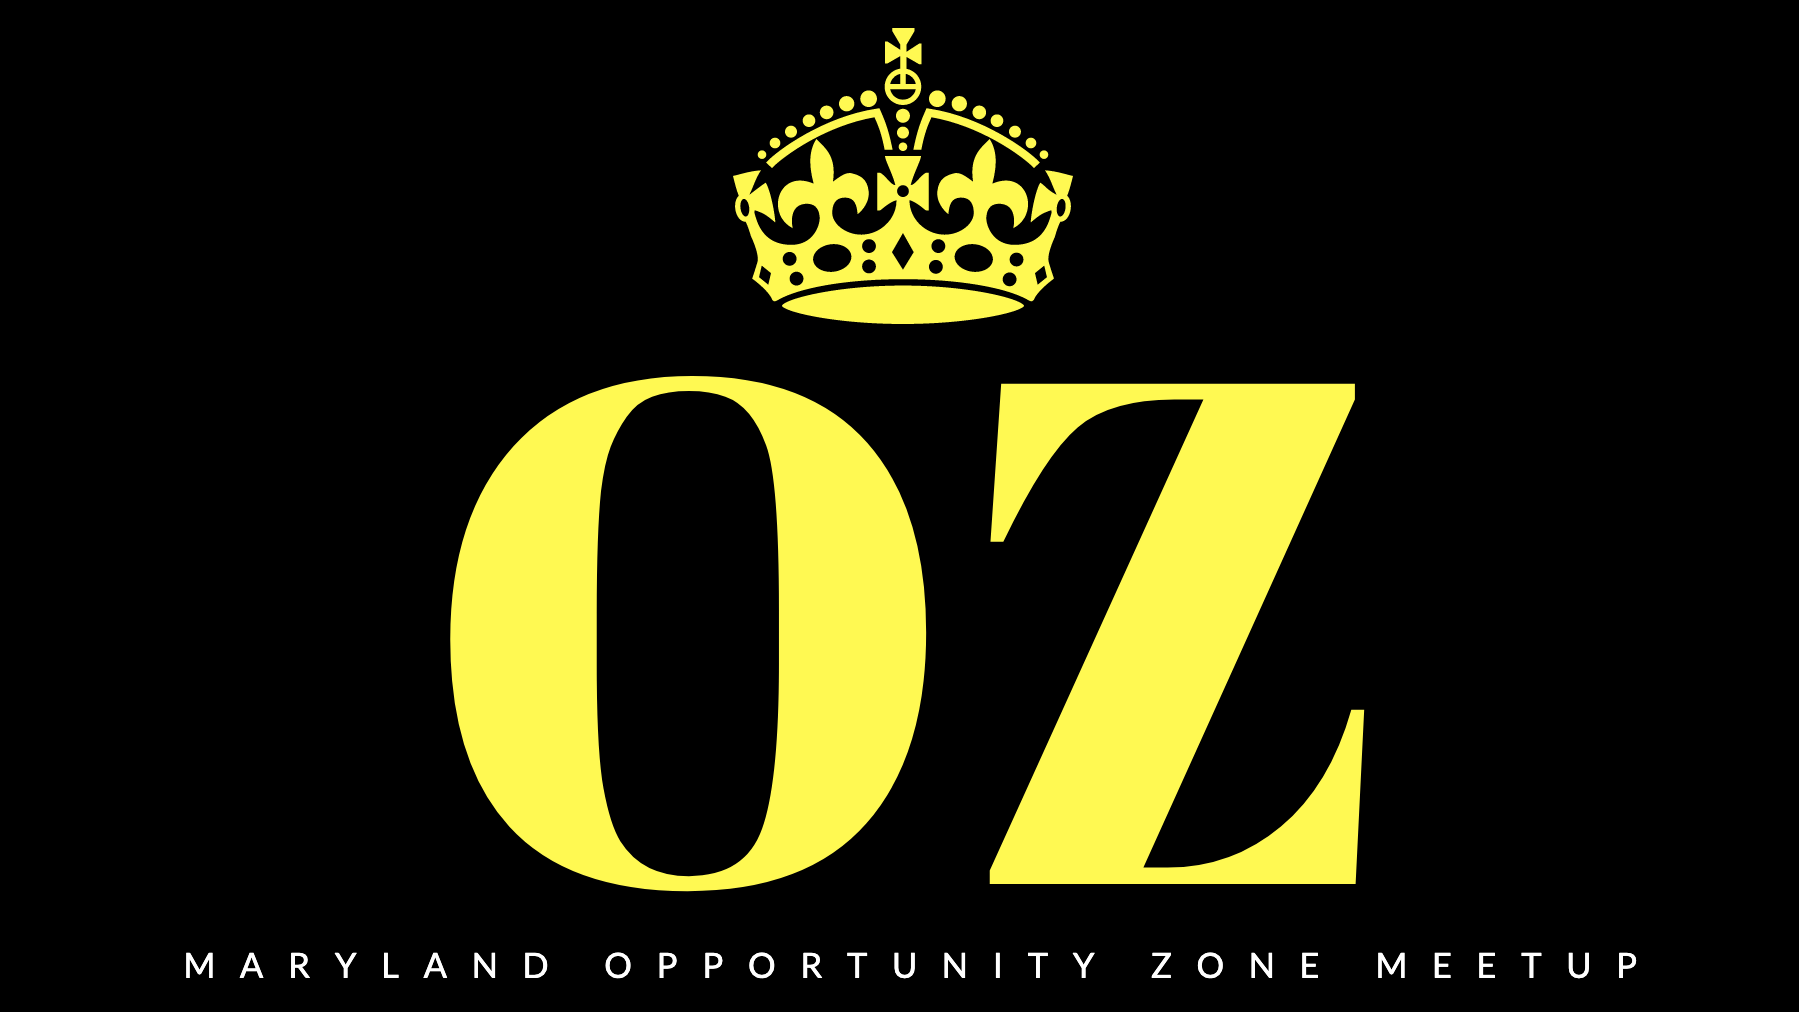 Maryland Opportunity Zone Meetup